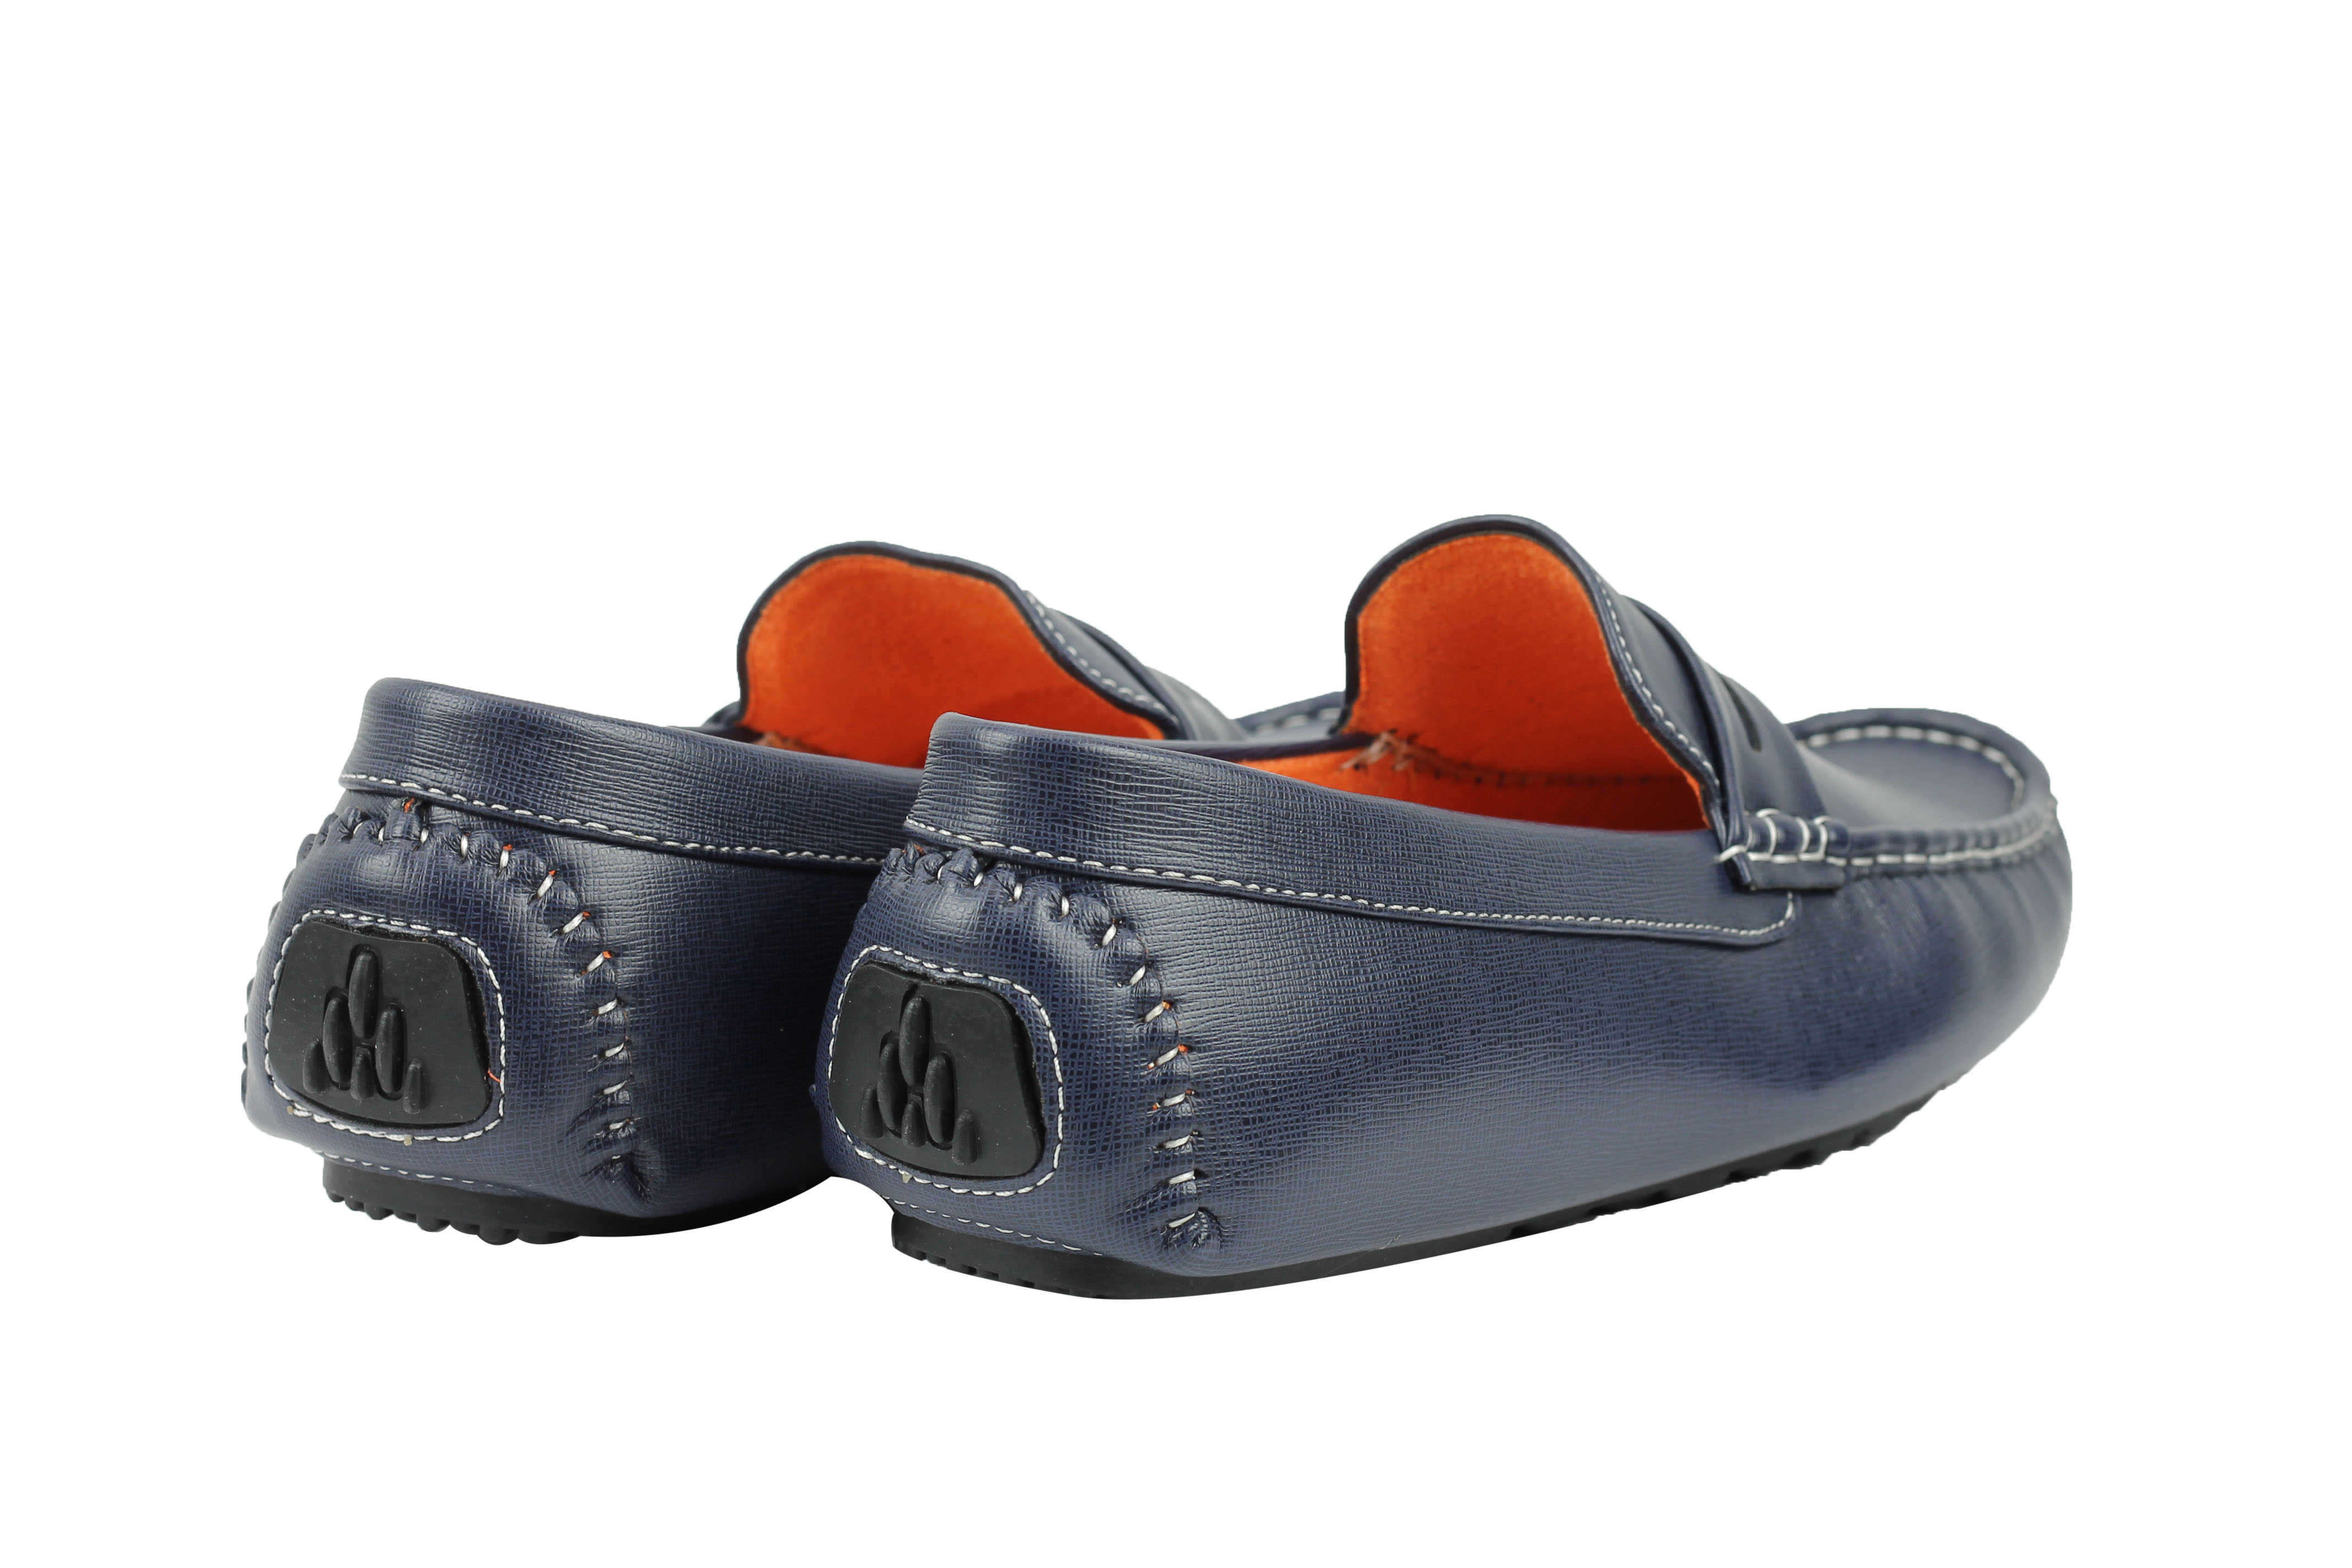 New-Mens-Faux-Leather-Slip-on-Penny-Loafers-Driving-Shoes-UK-Sizes-6-7-8-9-10-11 thumbnail 11